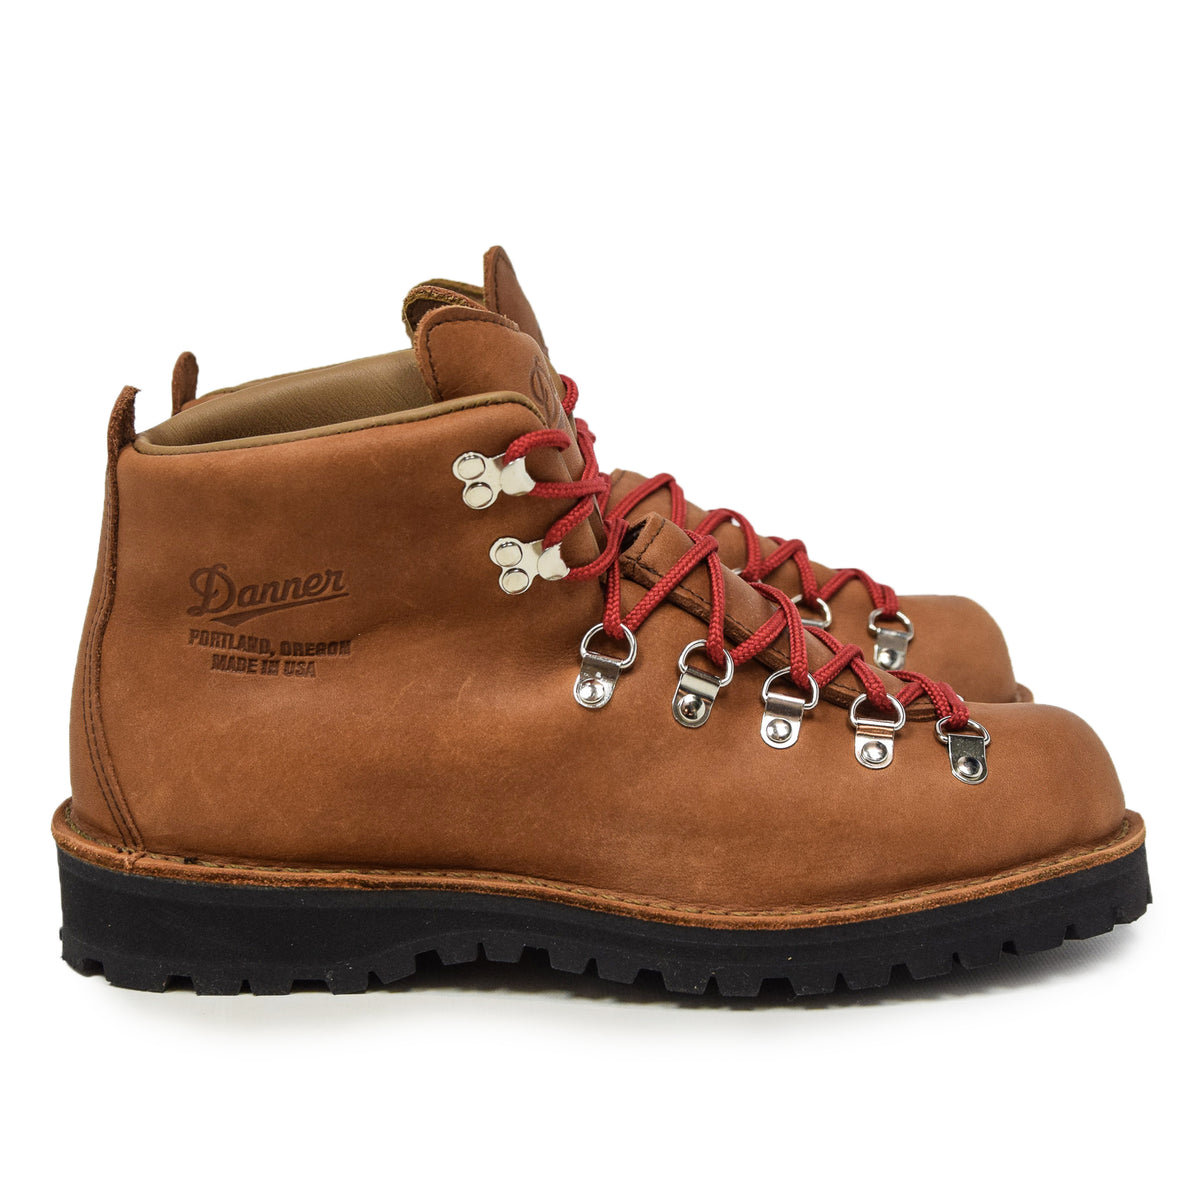 Danner Mountain Light Leather Gore-Tex Boot Cascade Clovis Side